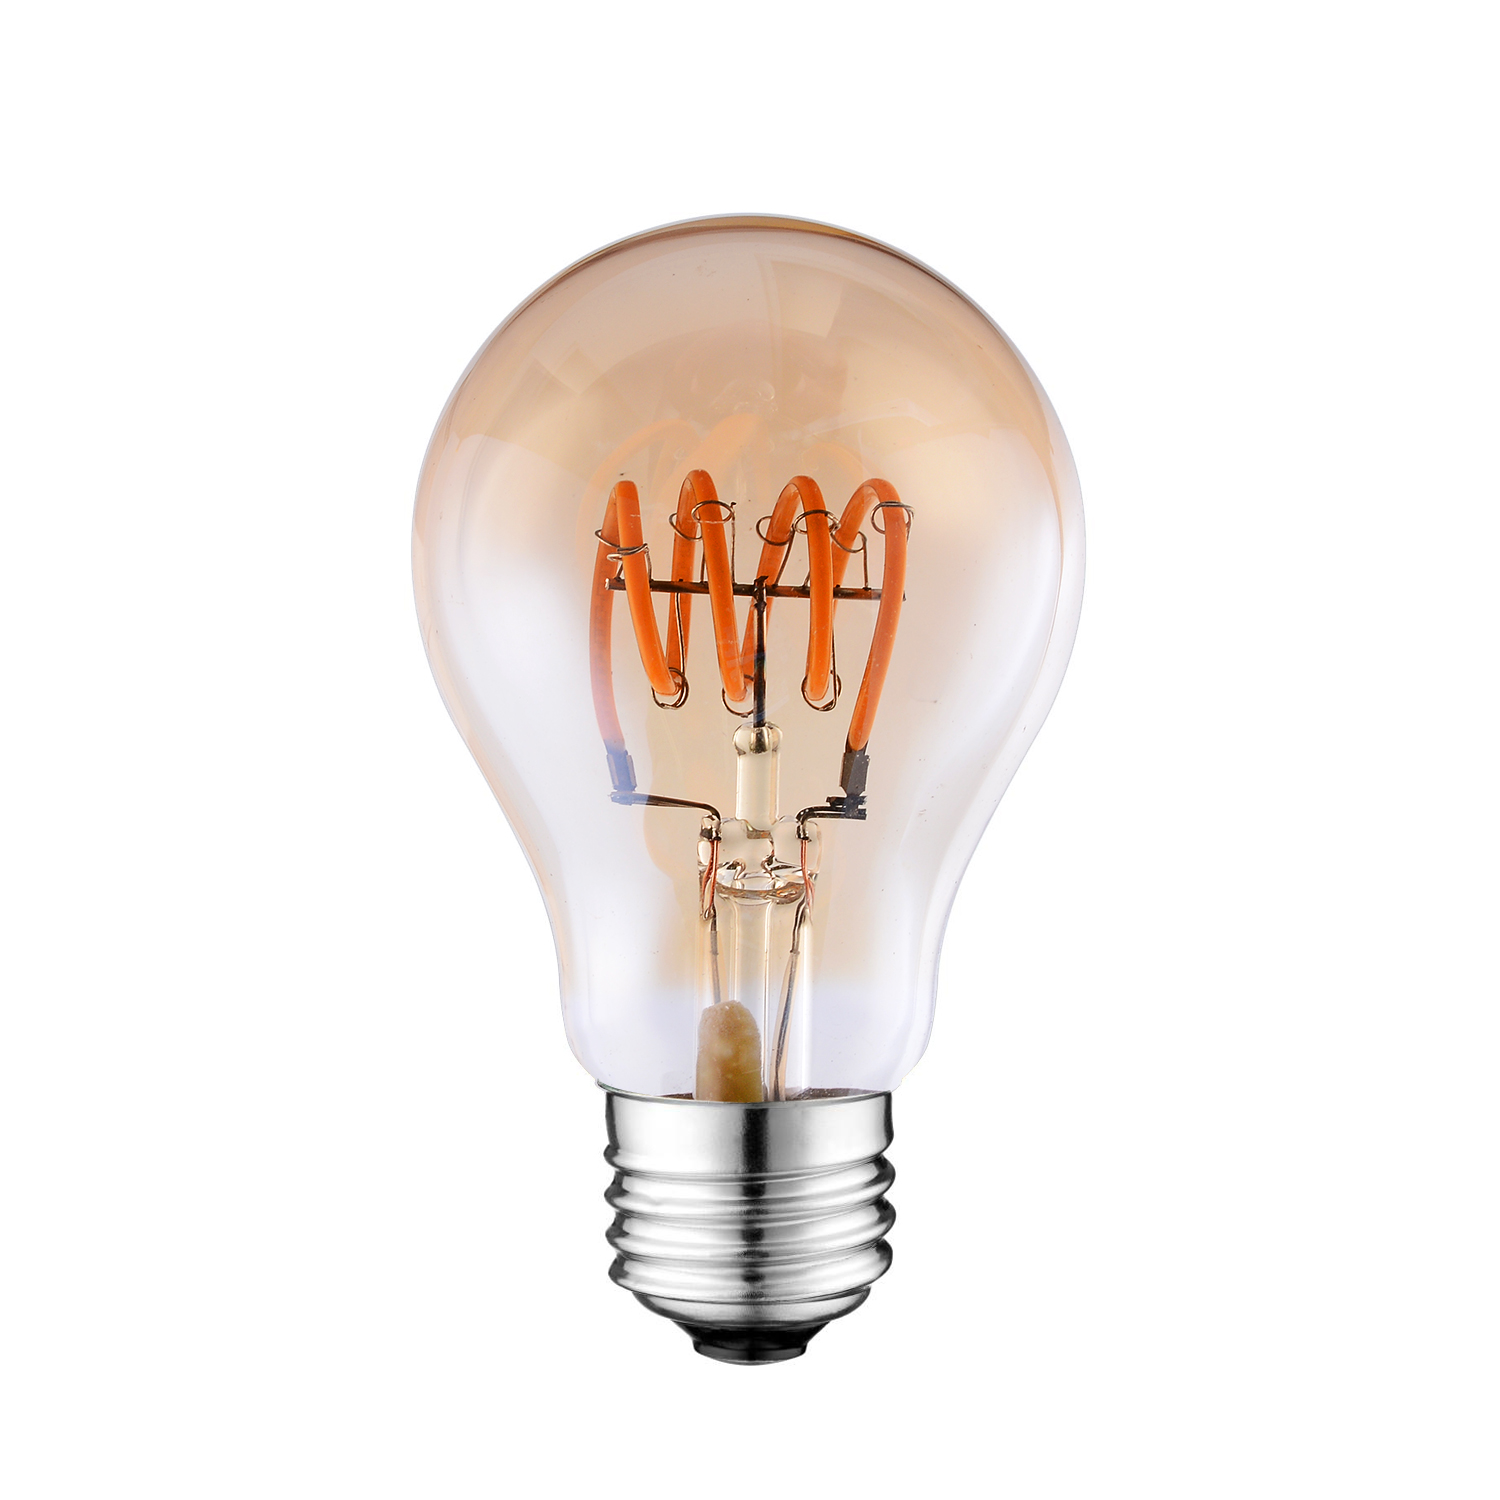 A19 Led Spiral Filament Light Bulb Venusop Led Light Bulbs